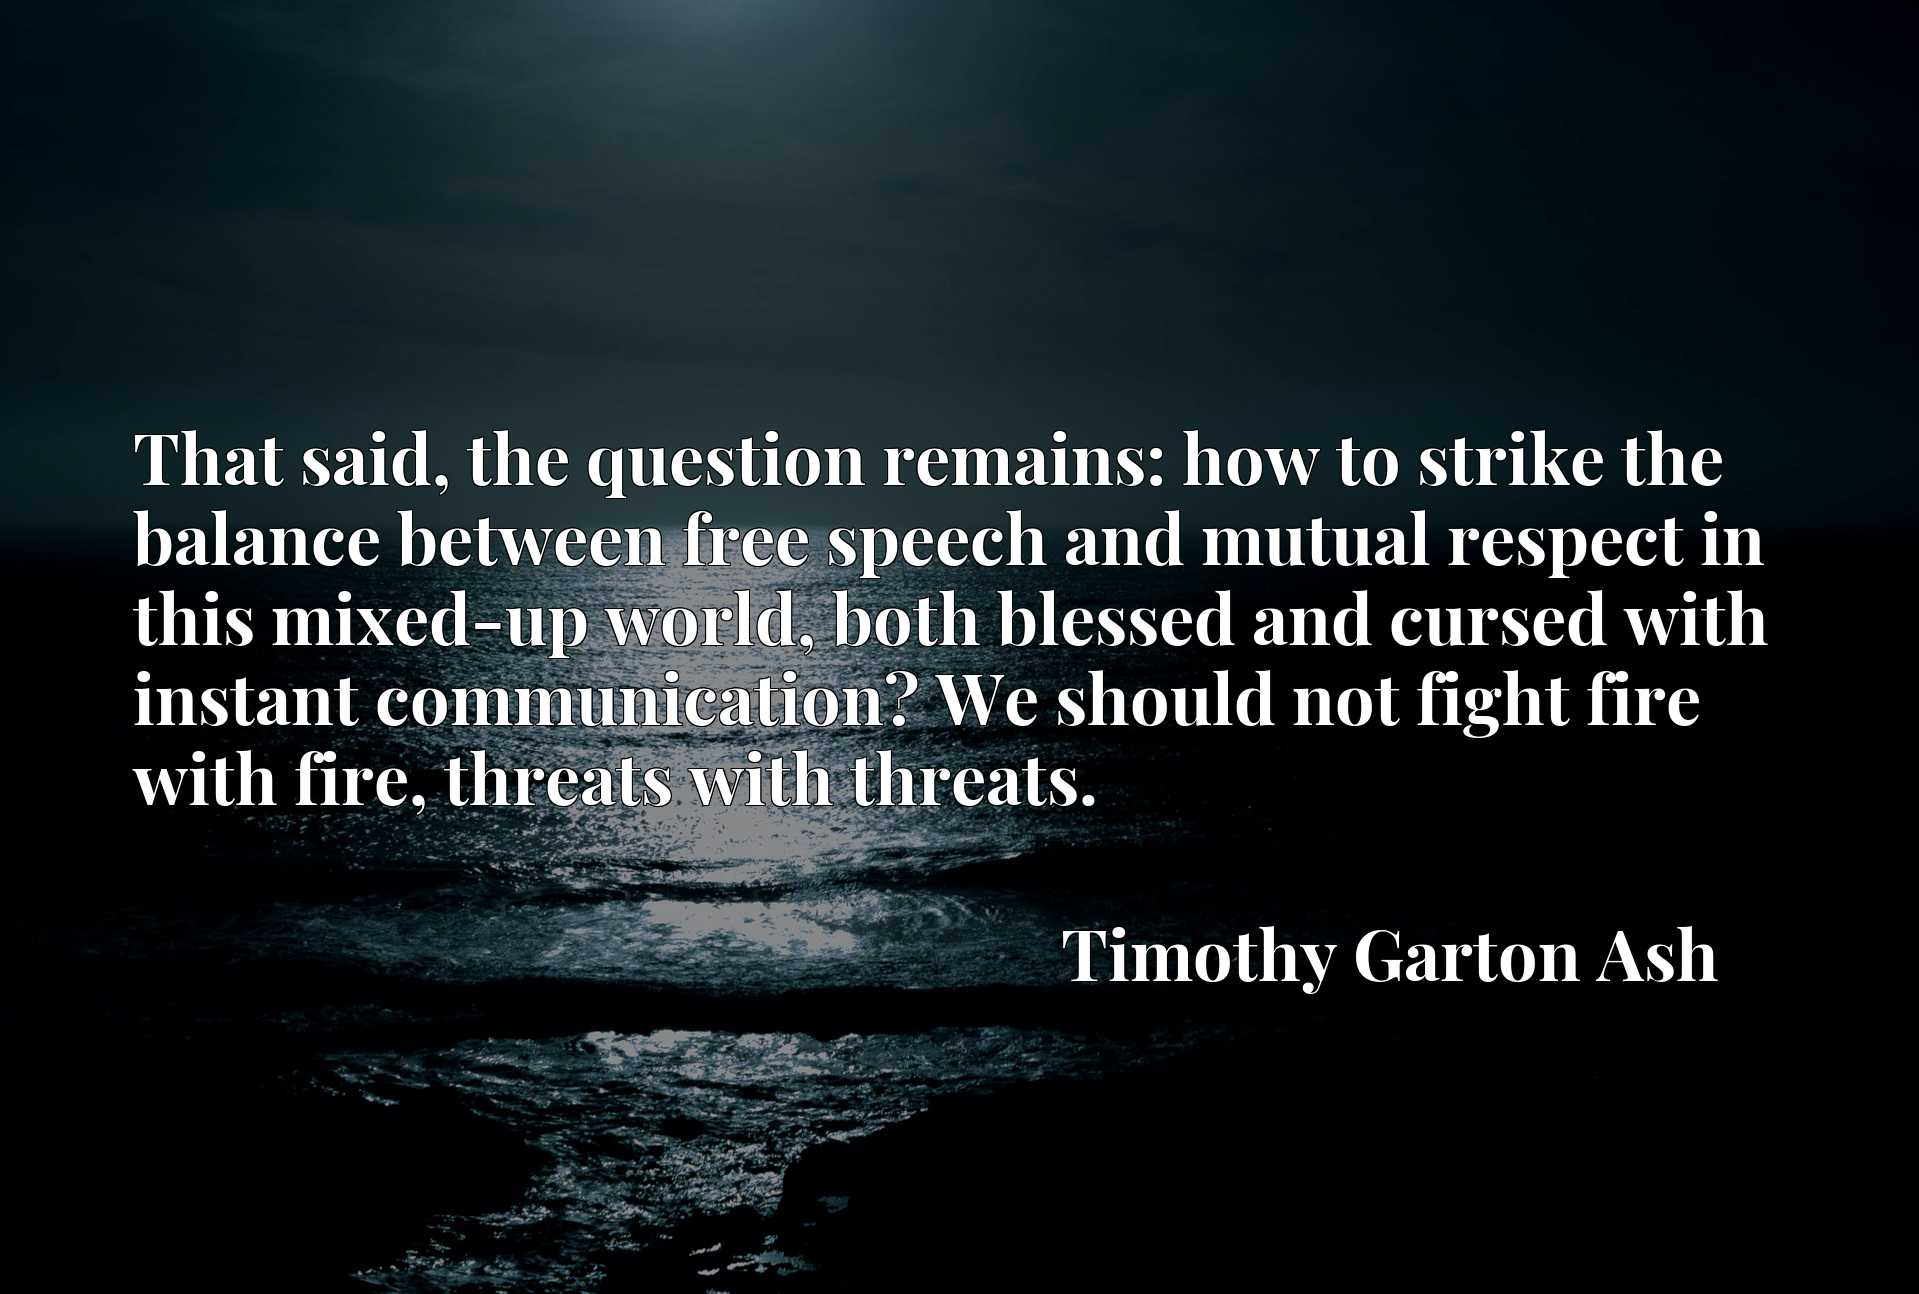 That said, the question remains: how to strike the balance between free speech and mutual respect in this mixed-up world, both blessed and cursed with instant communication? We should not fight fire with fire, threats with threats.